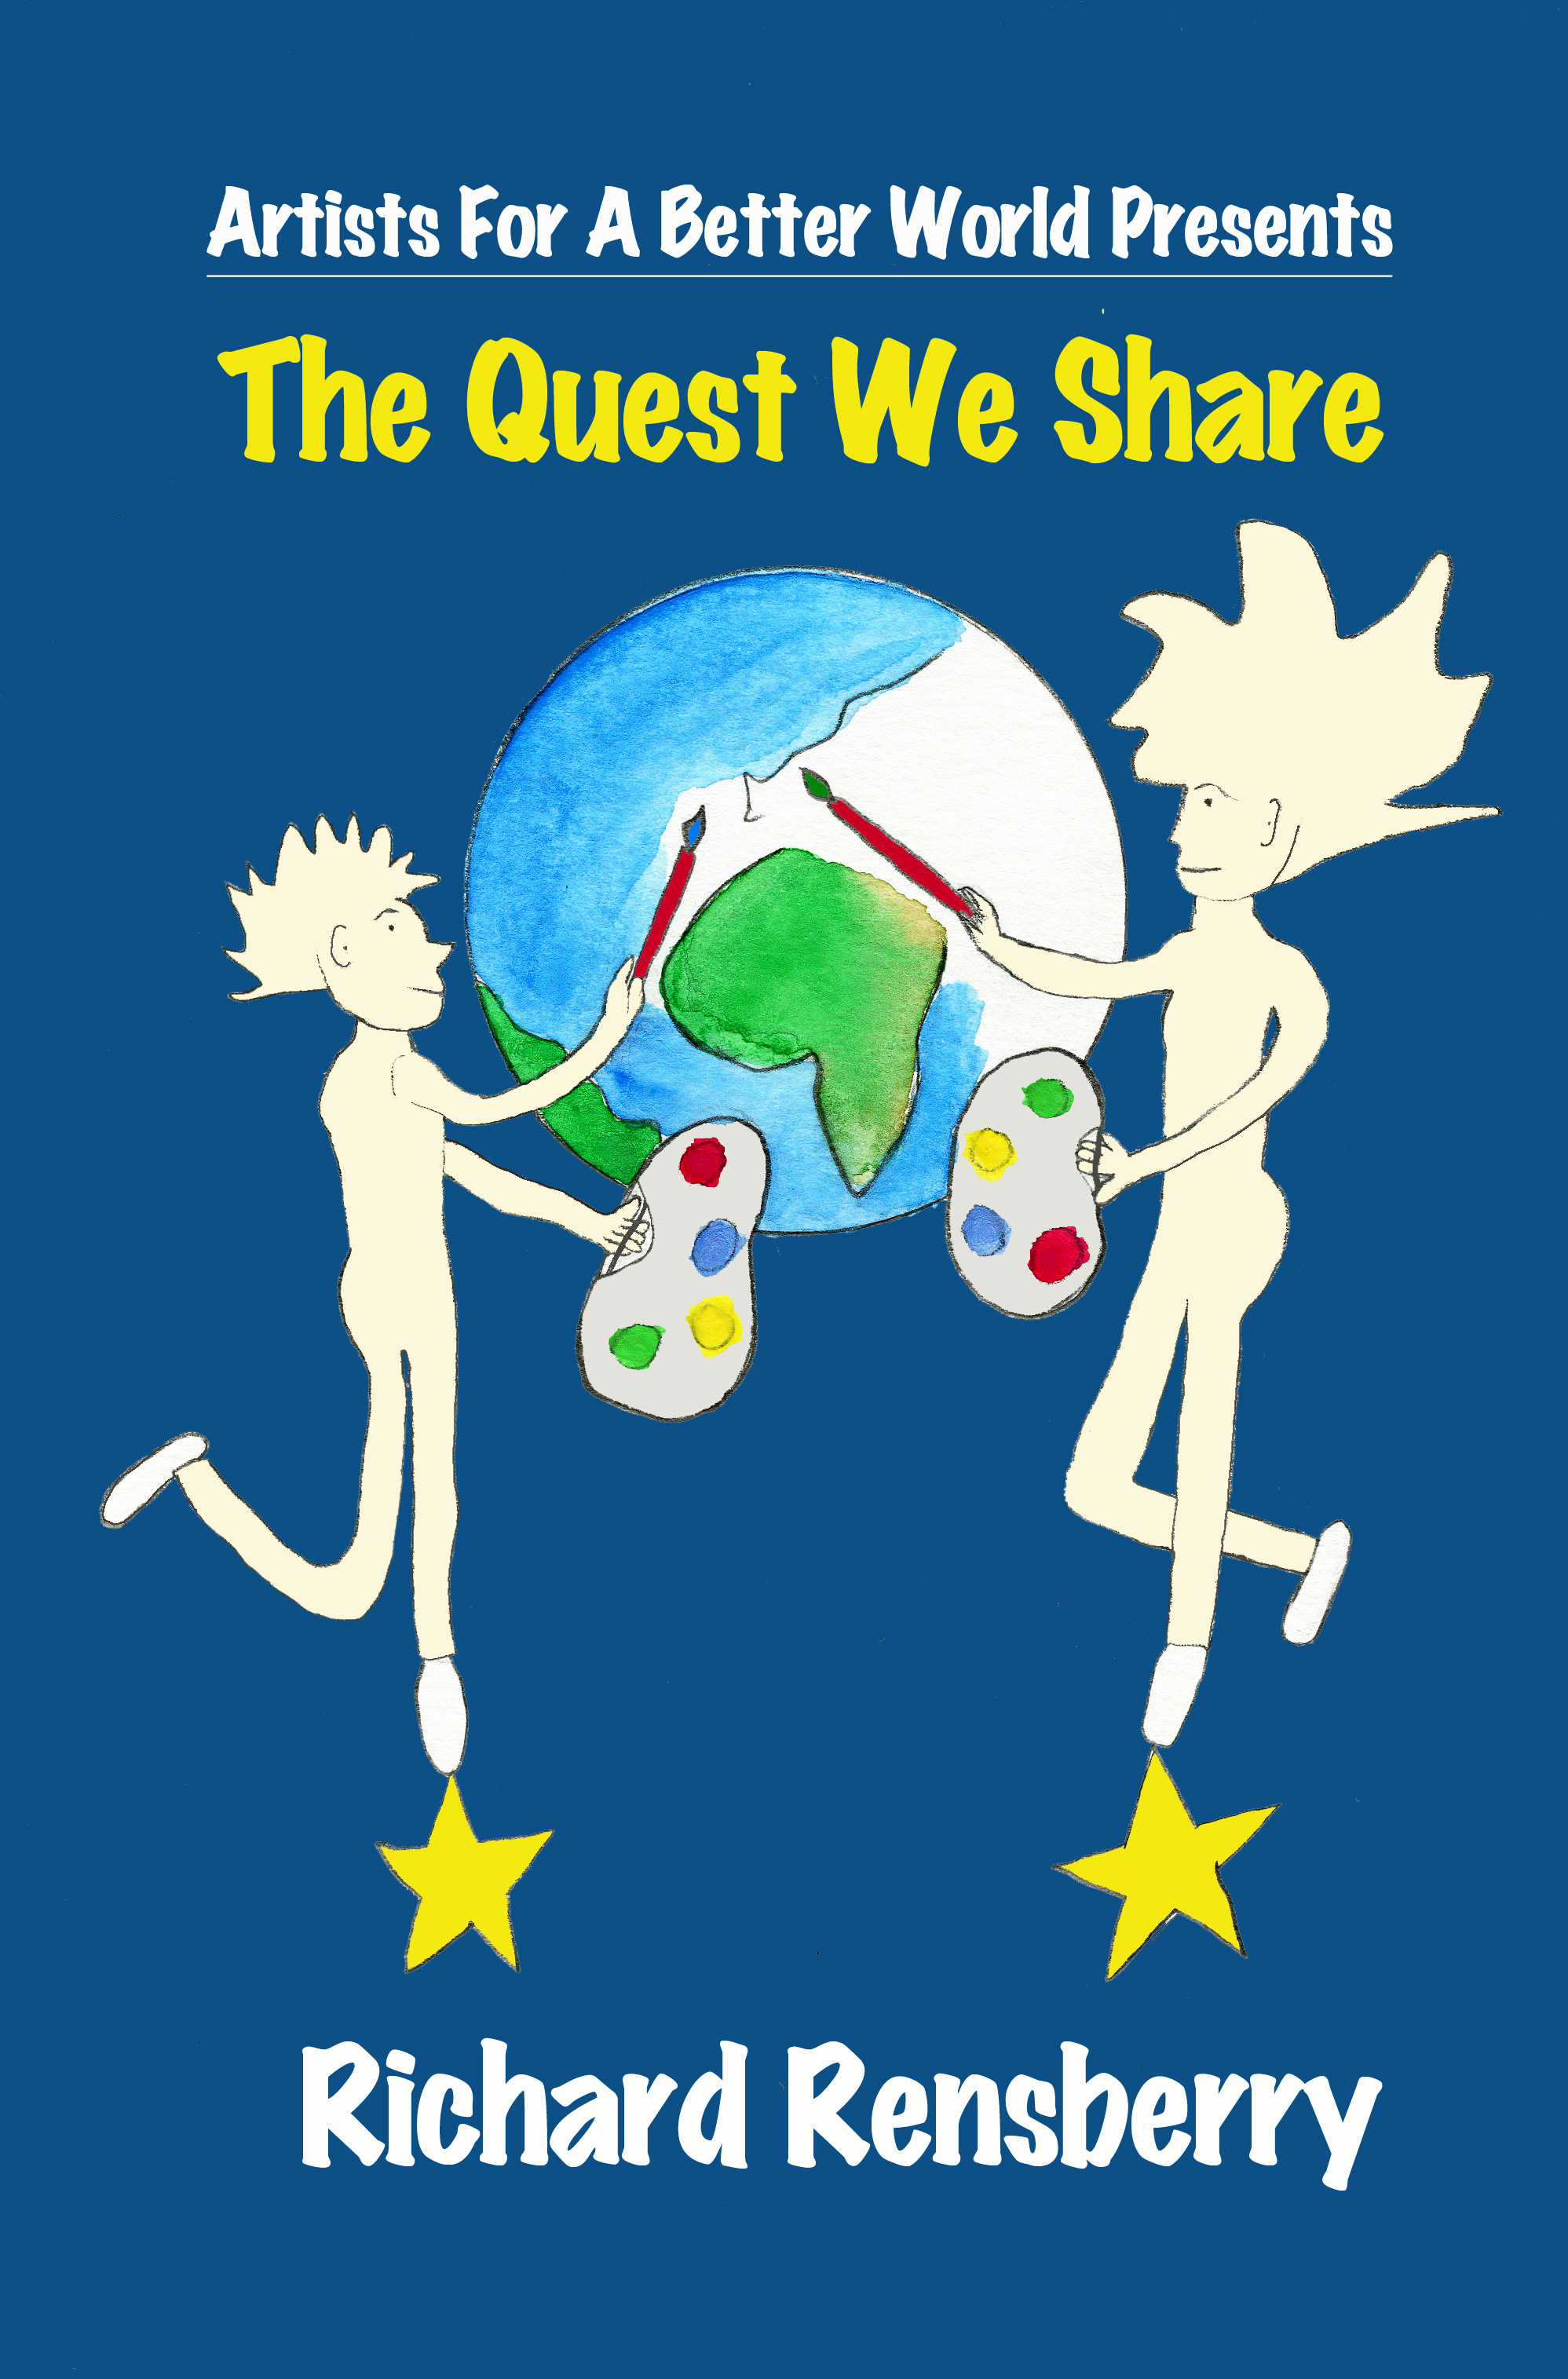 Books Make Booms custom book for Artists For A Better World, The Quest We Share written by Richard Rensberry and illustrated by Mary Rensberry